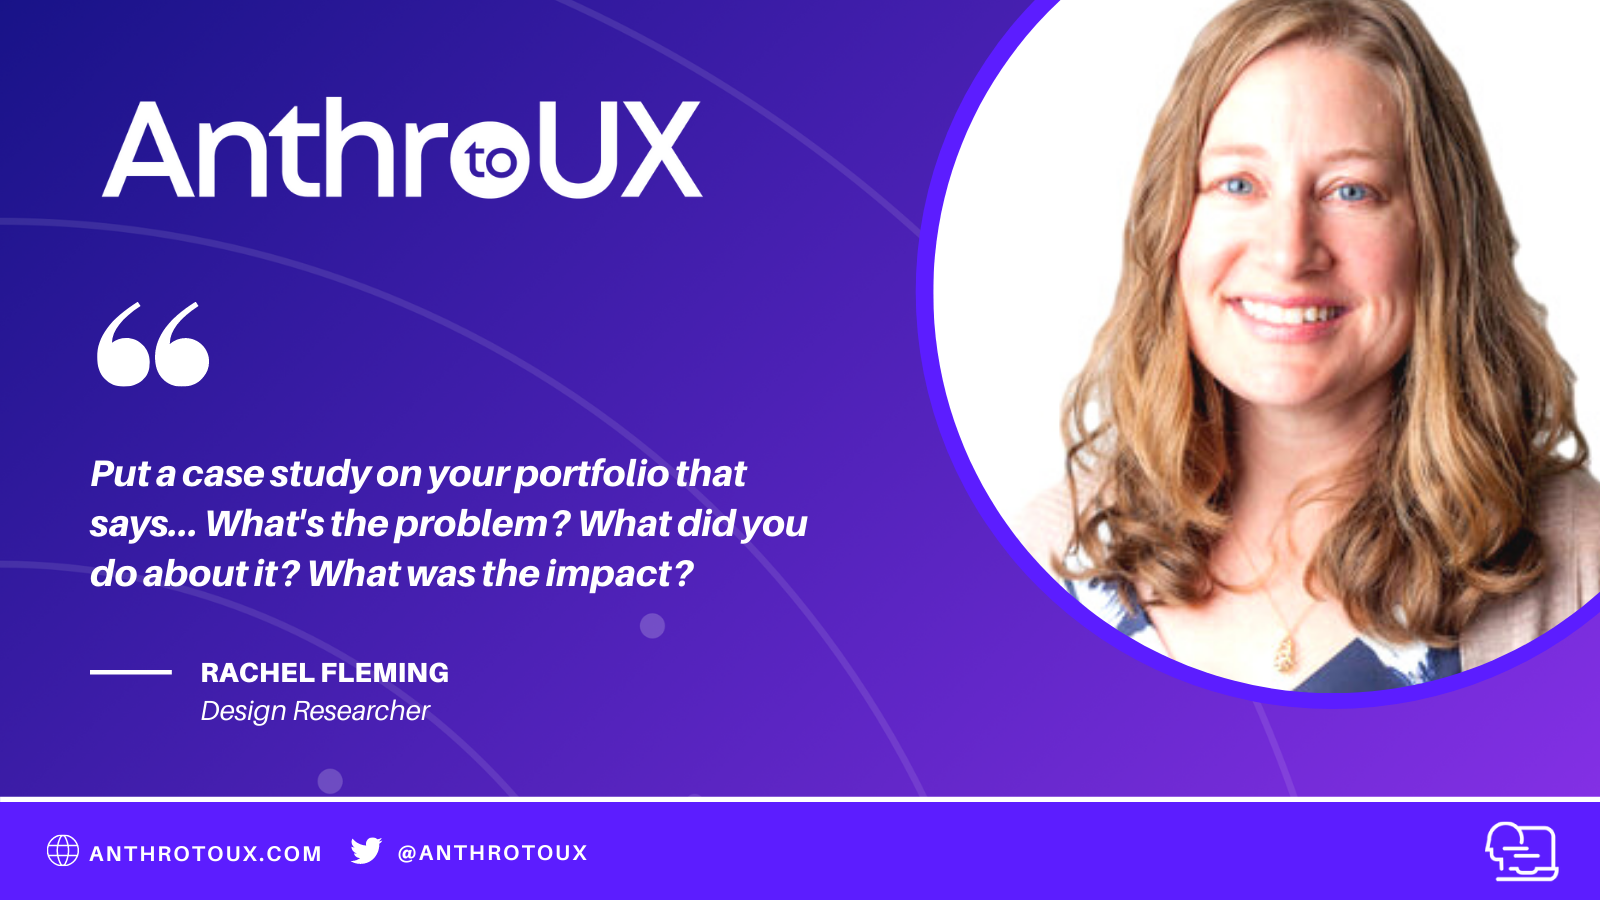 Rachel Fleming on the Anthro to UX podcast with Matt Artz